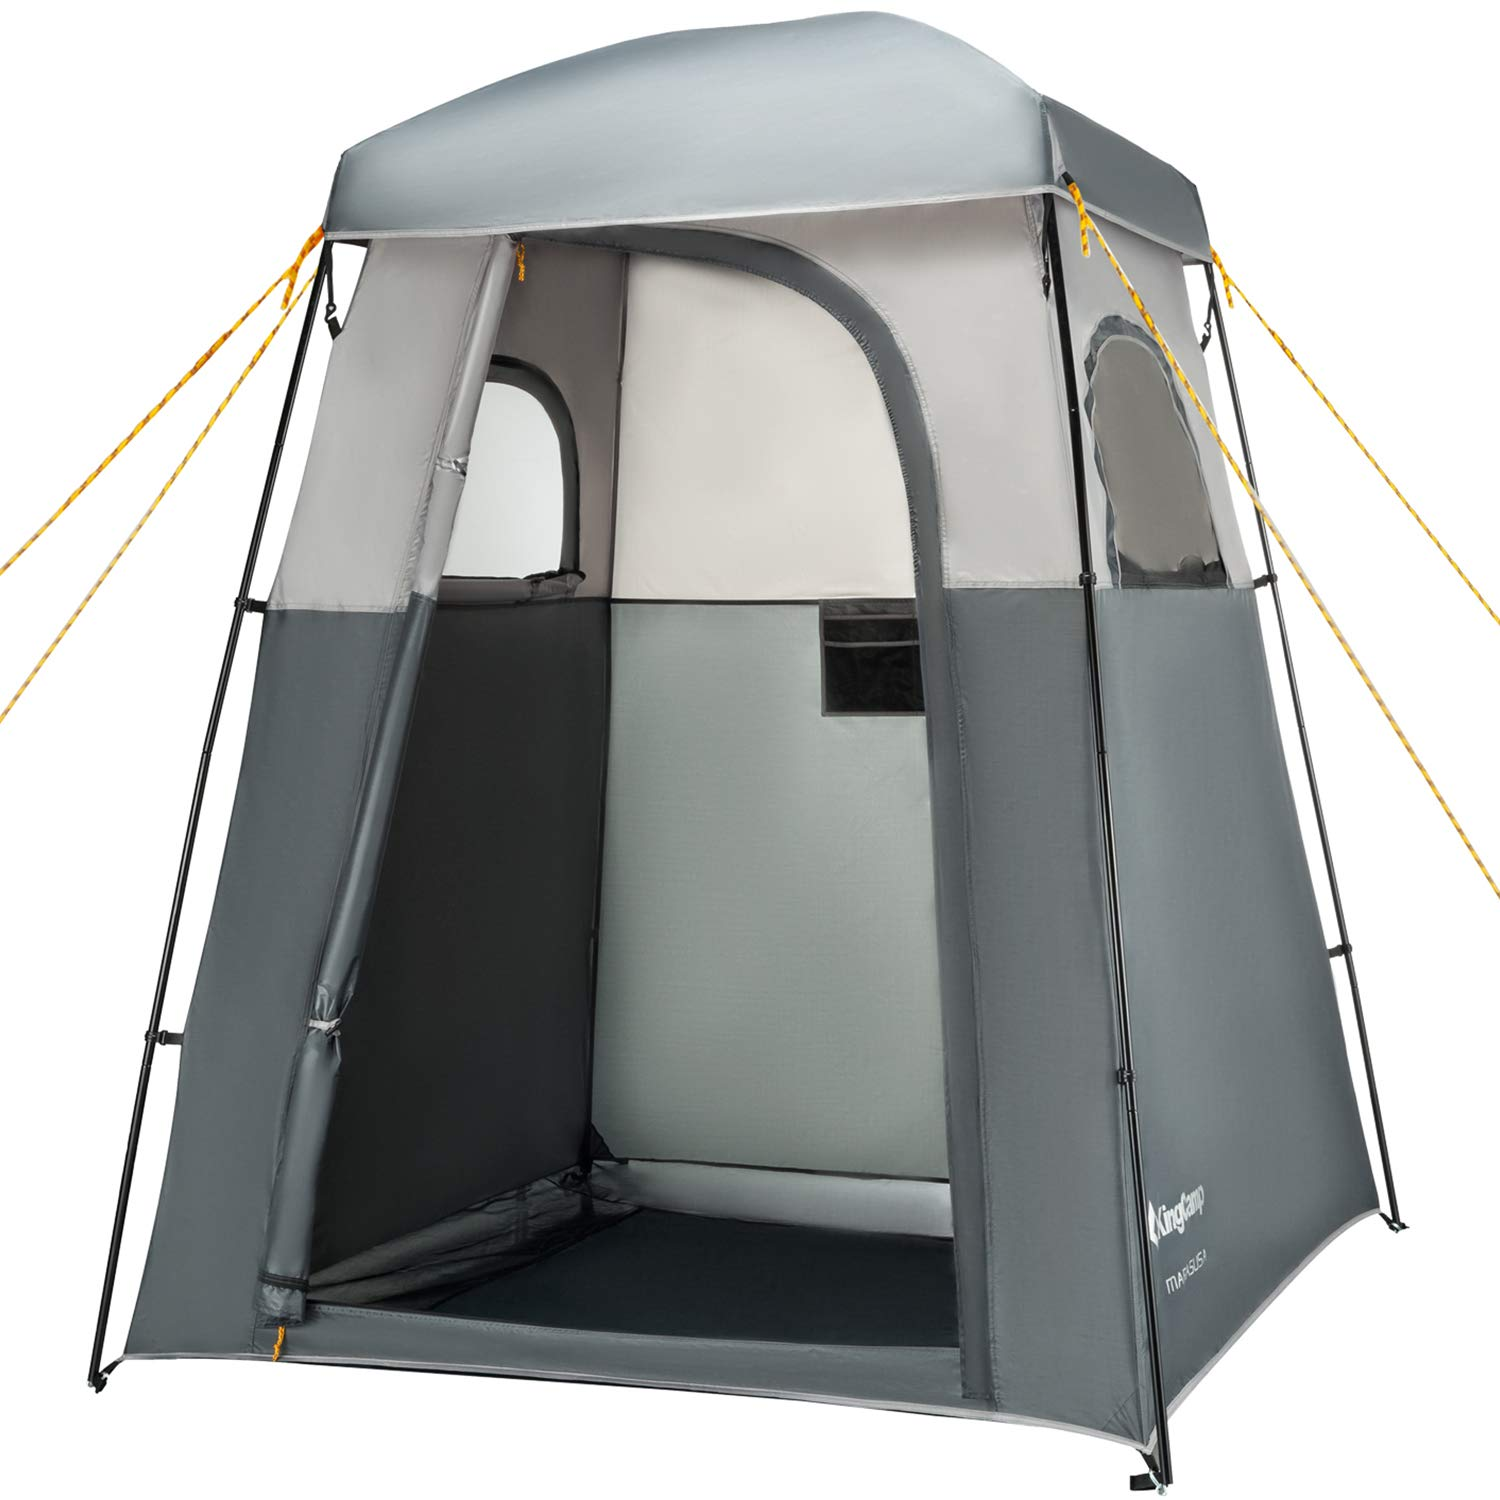 KingCamp Oversize Outdoor Easy Up Portable Dressing Changing Room Shower Privacy Shelter Tent, GRAY by KingCamp